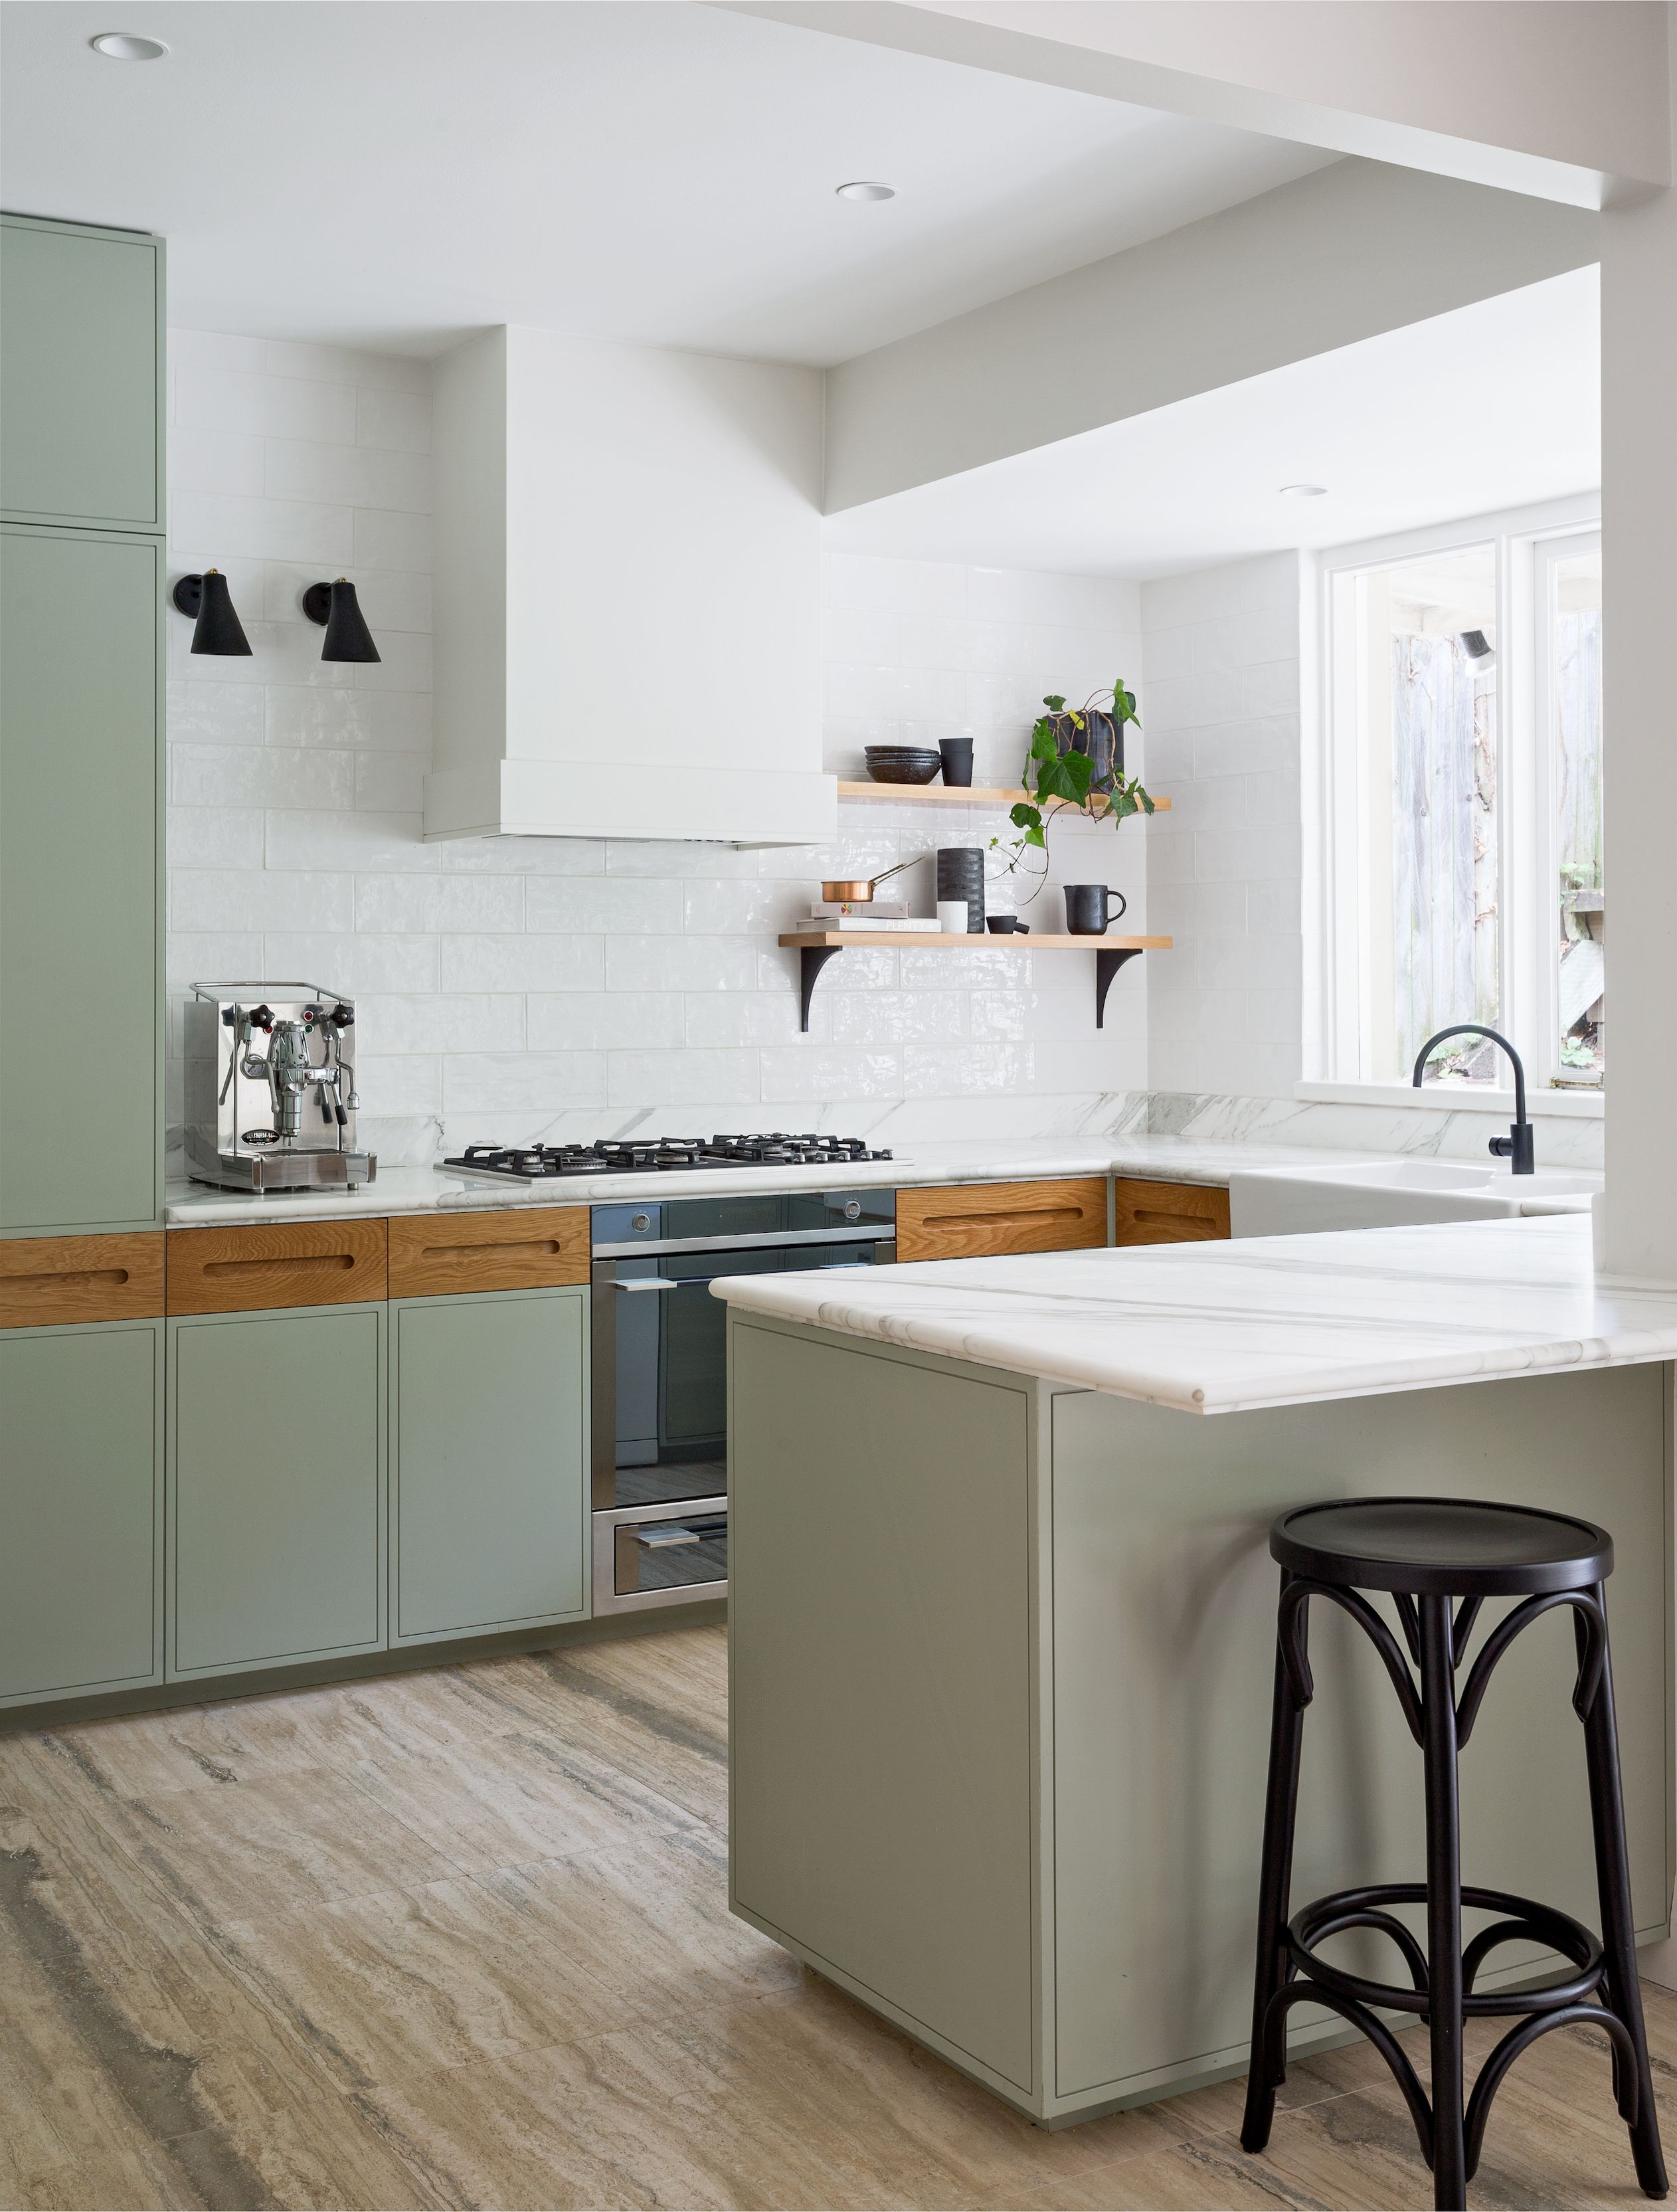 Uncategorized Fresh Design Kitchens a clean and fresh looking kitchen remodel with sage cabinets calacatta marble counters